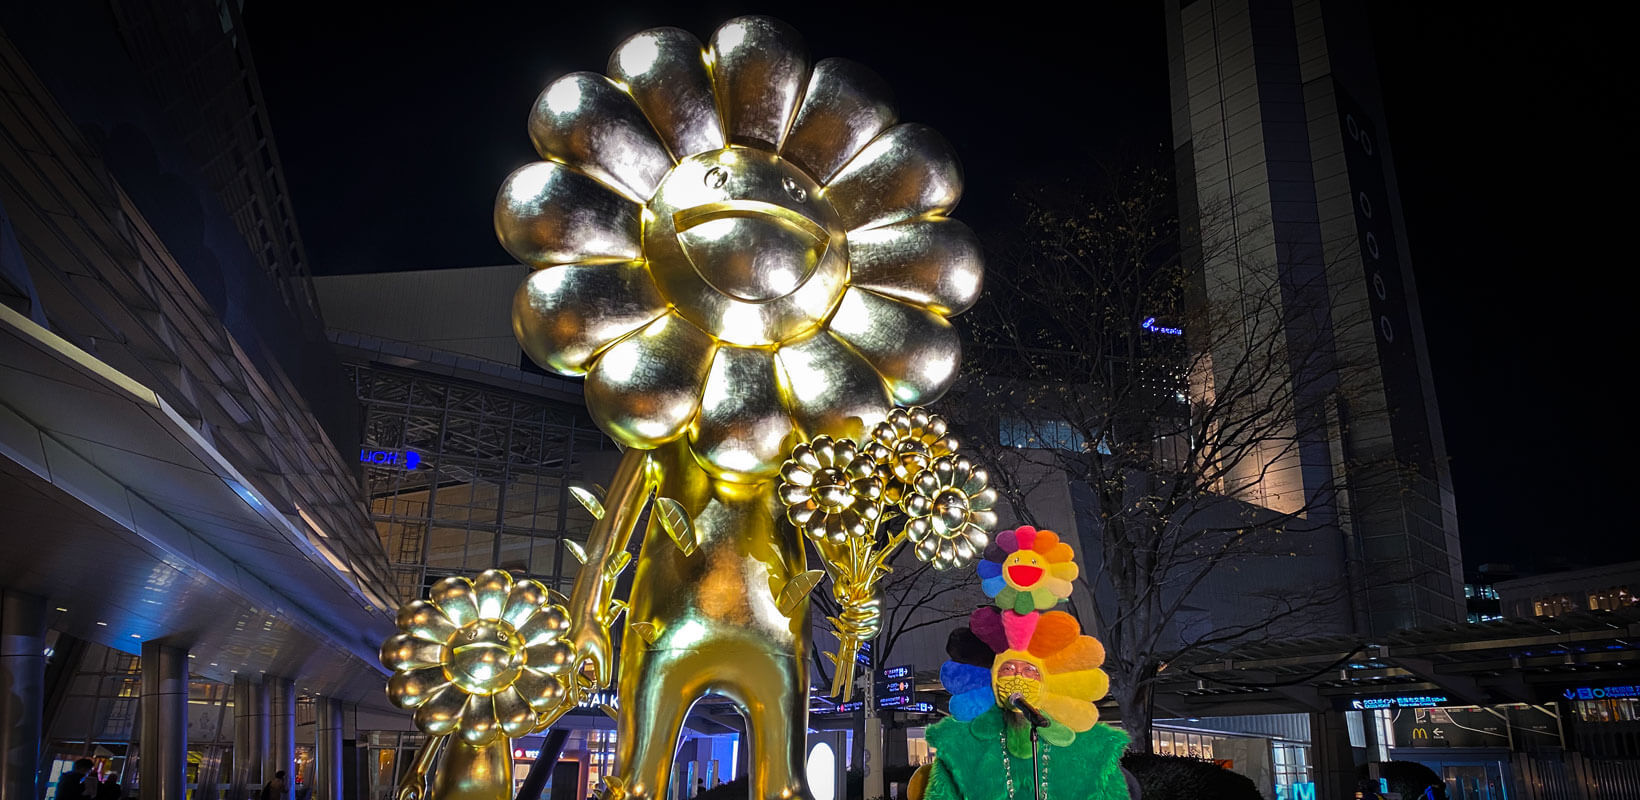 Don't Miss This Huge Golden Sculpture at Roppongi Hills